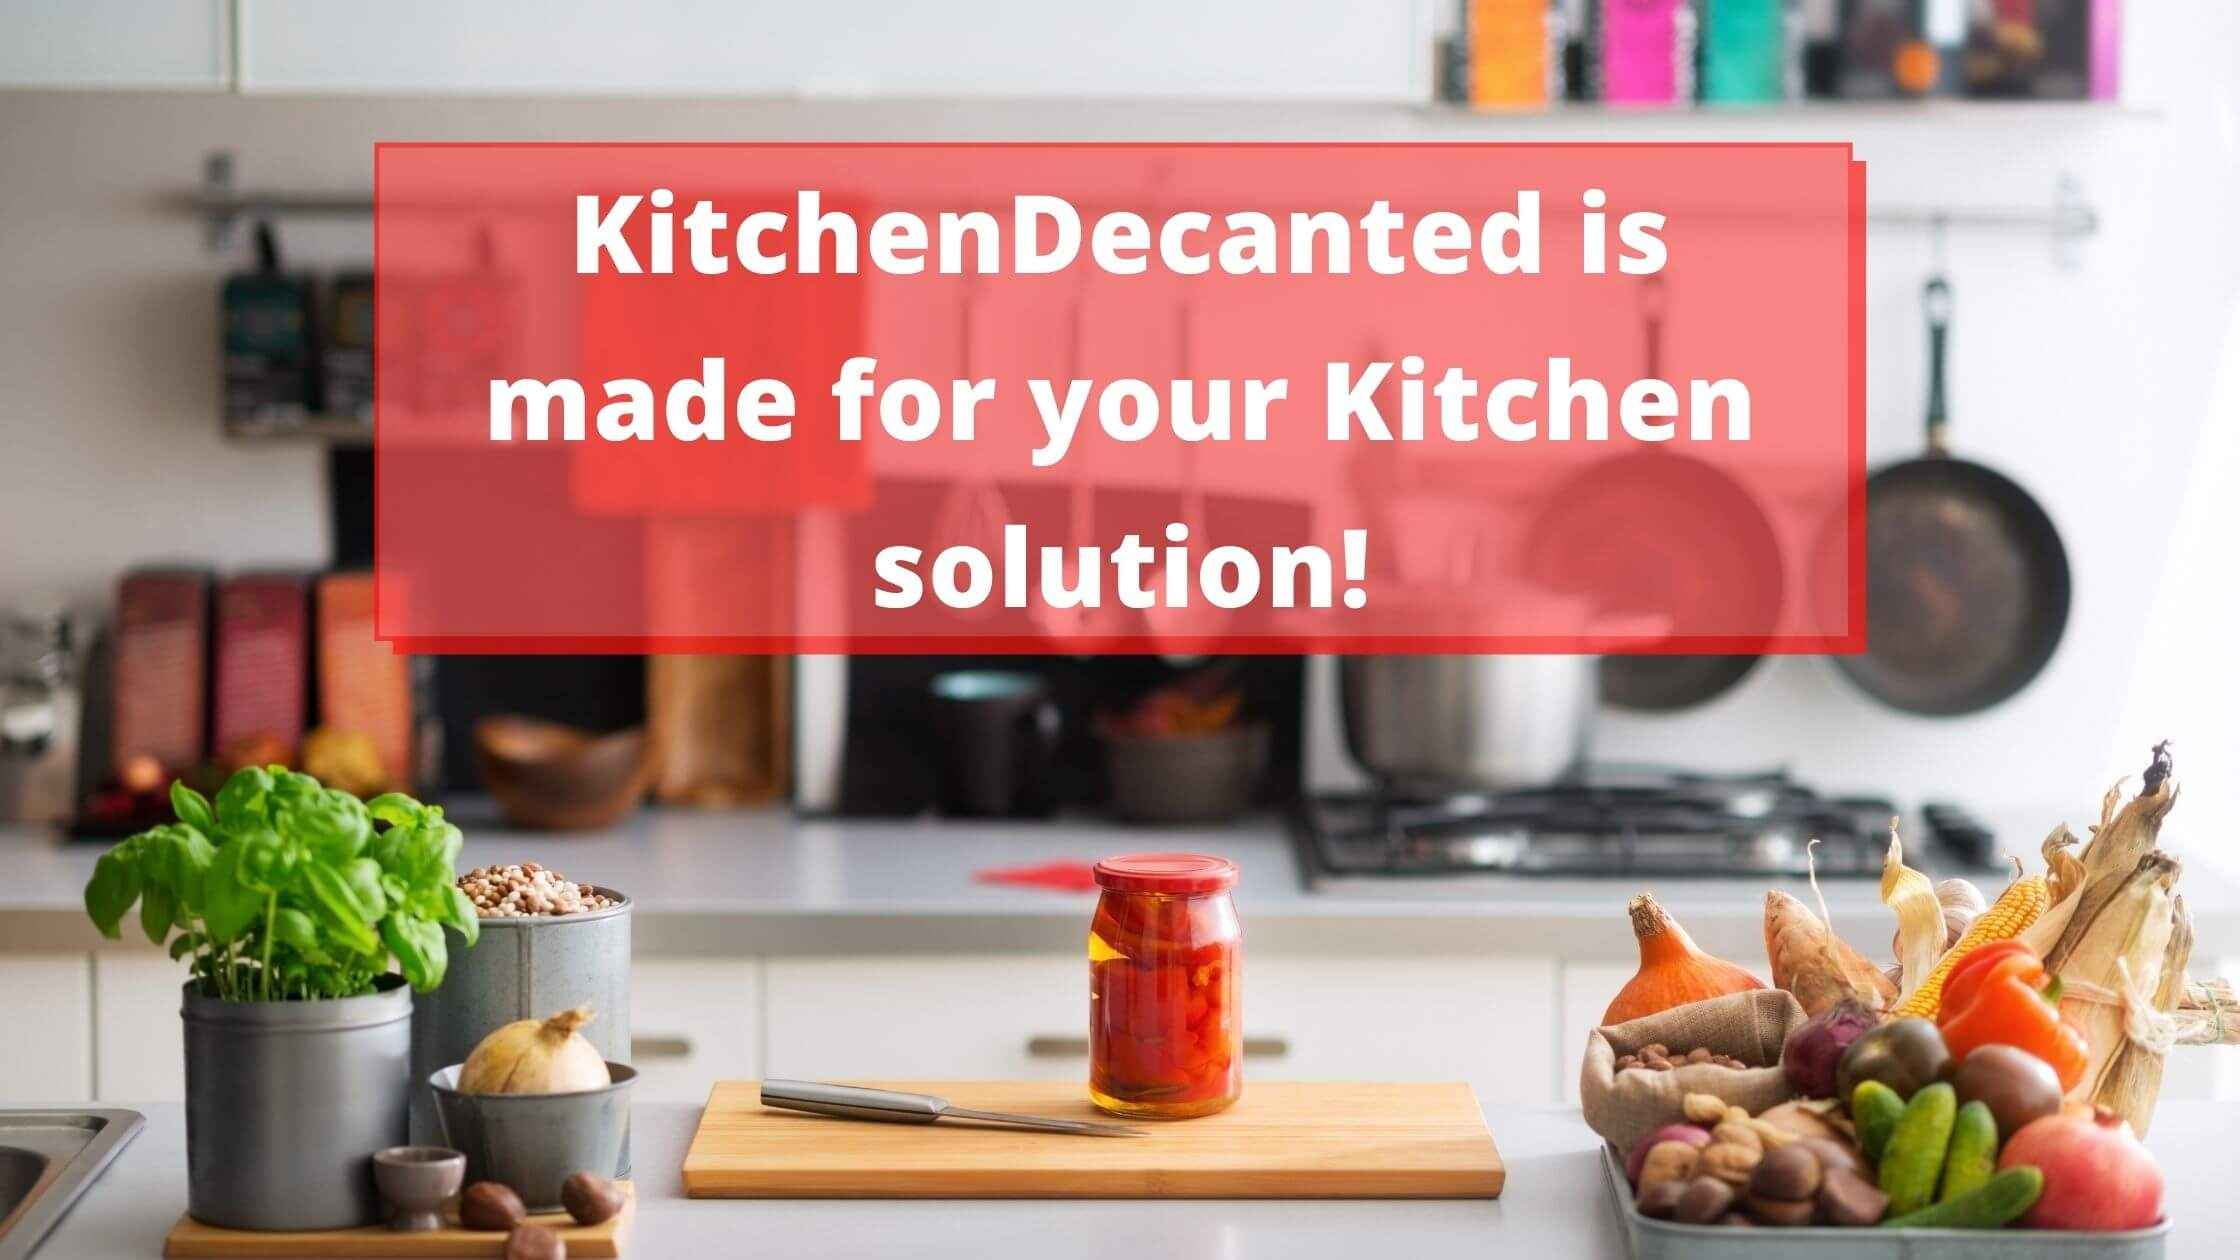 KitchenDecanted is made for your Kitchen solution